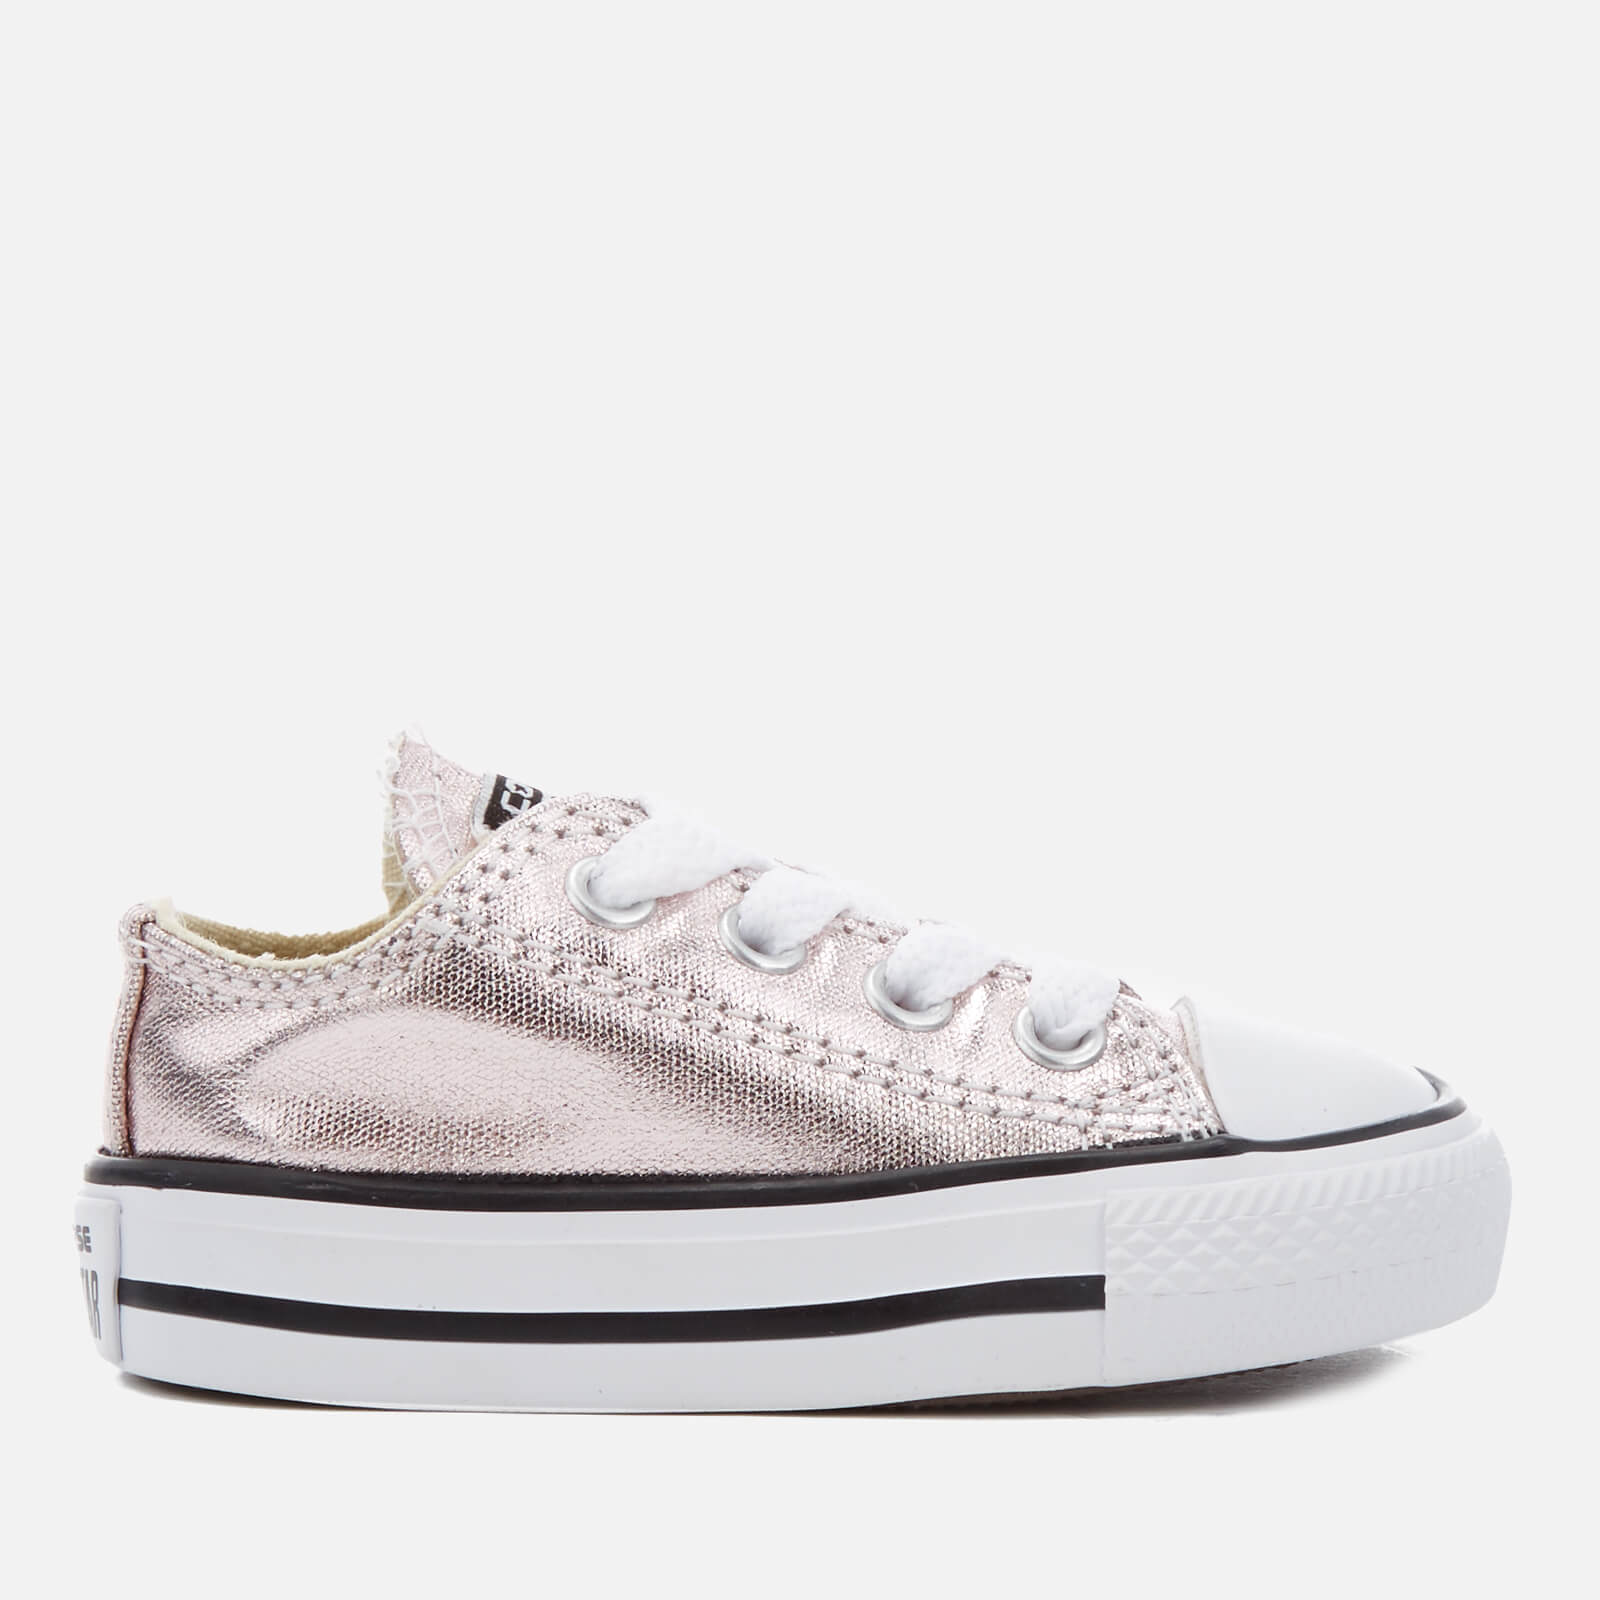 8b147c90a39ca0 Converse Toddlers  Chuck Taylor All Star Metallic Ox Trainers - Rose Quartz  White Black Clothing